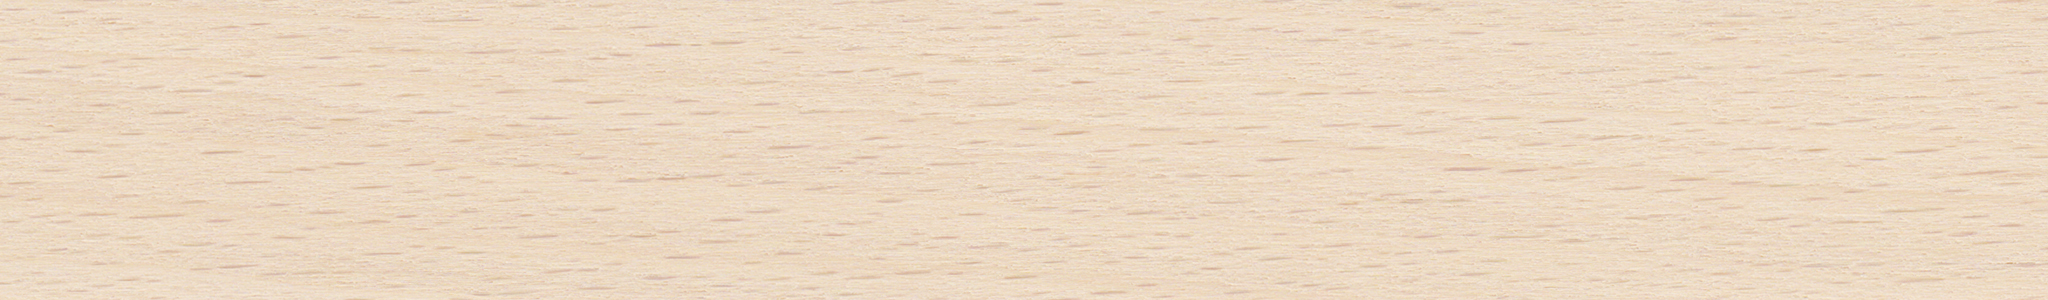 HD 71020 Veneer Edge Beech Preglued